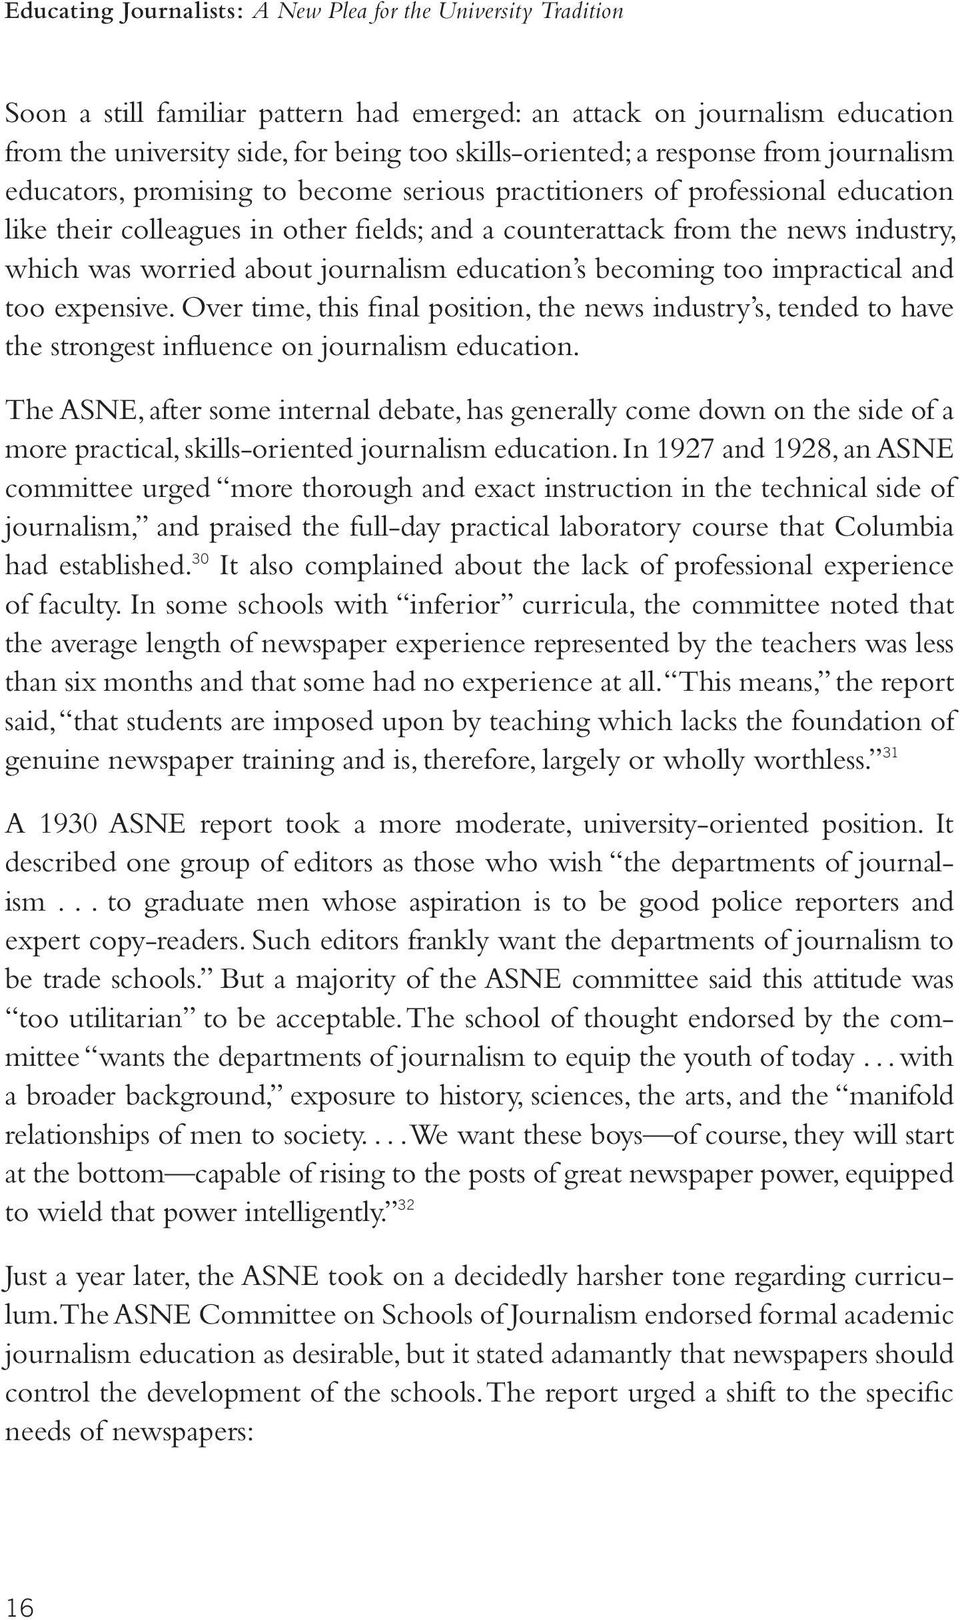 worried about journalism education s becoming too impractical and too expensive. Over time, this final position, the news industry s, tended to have the strongest influence on journalism education.